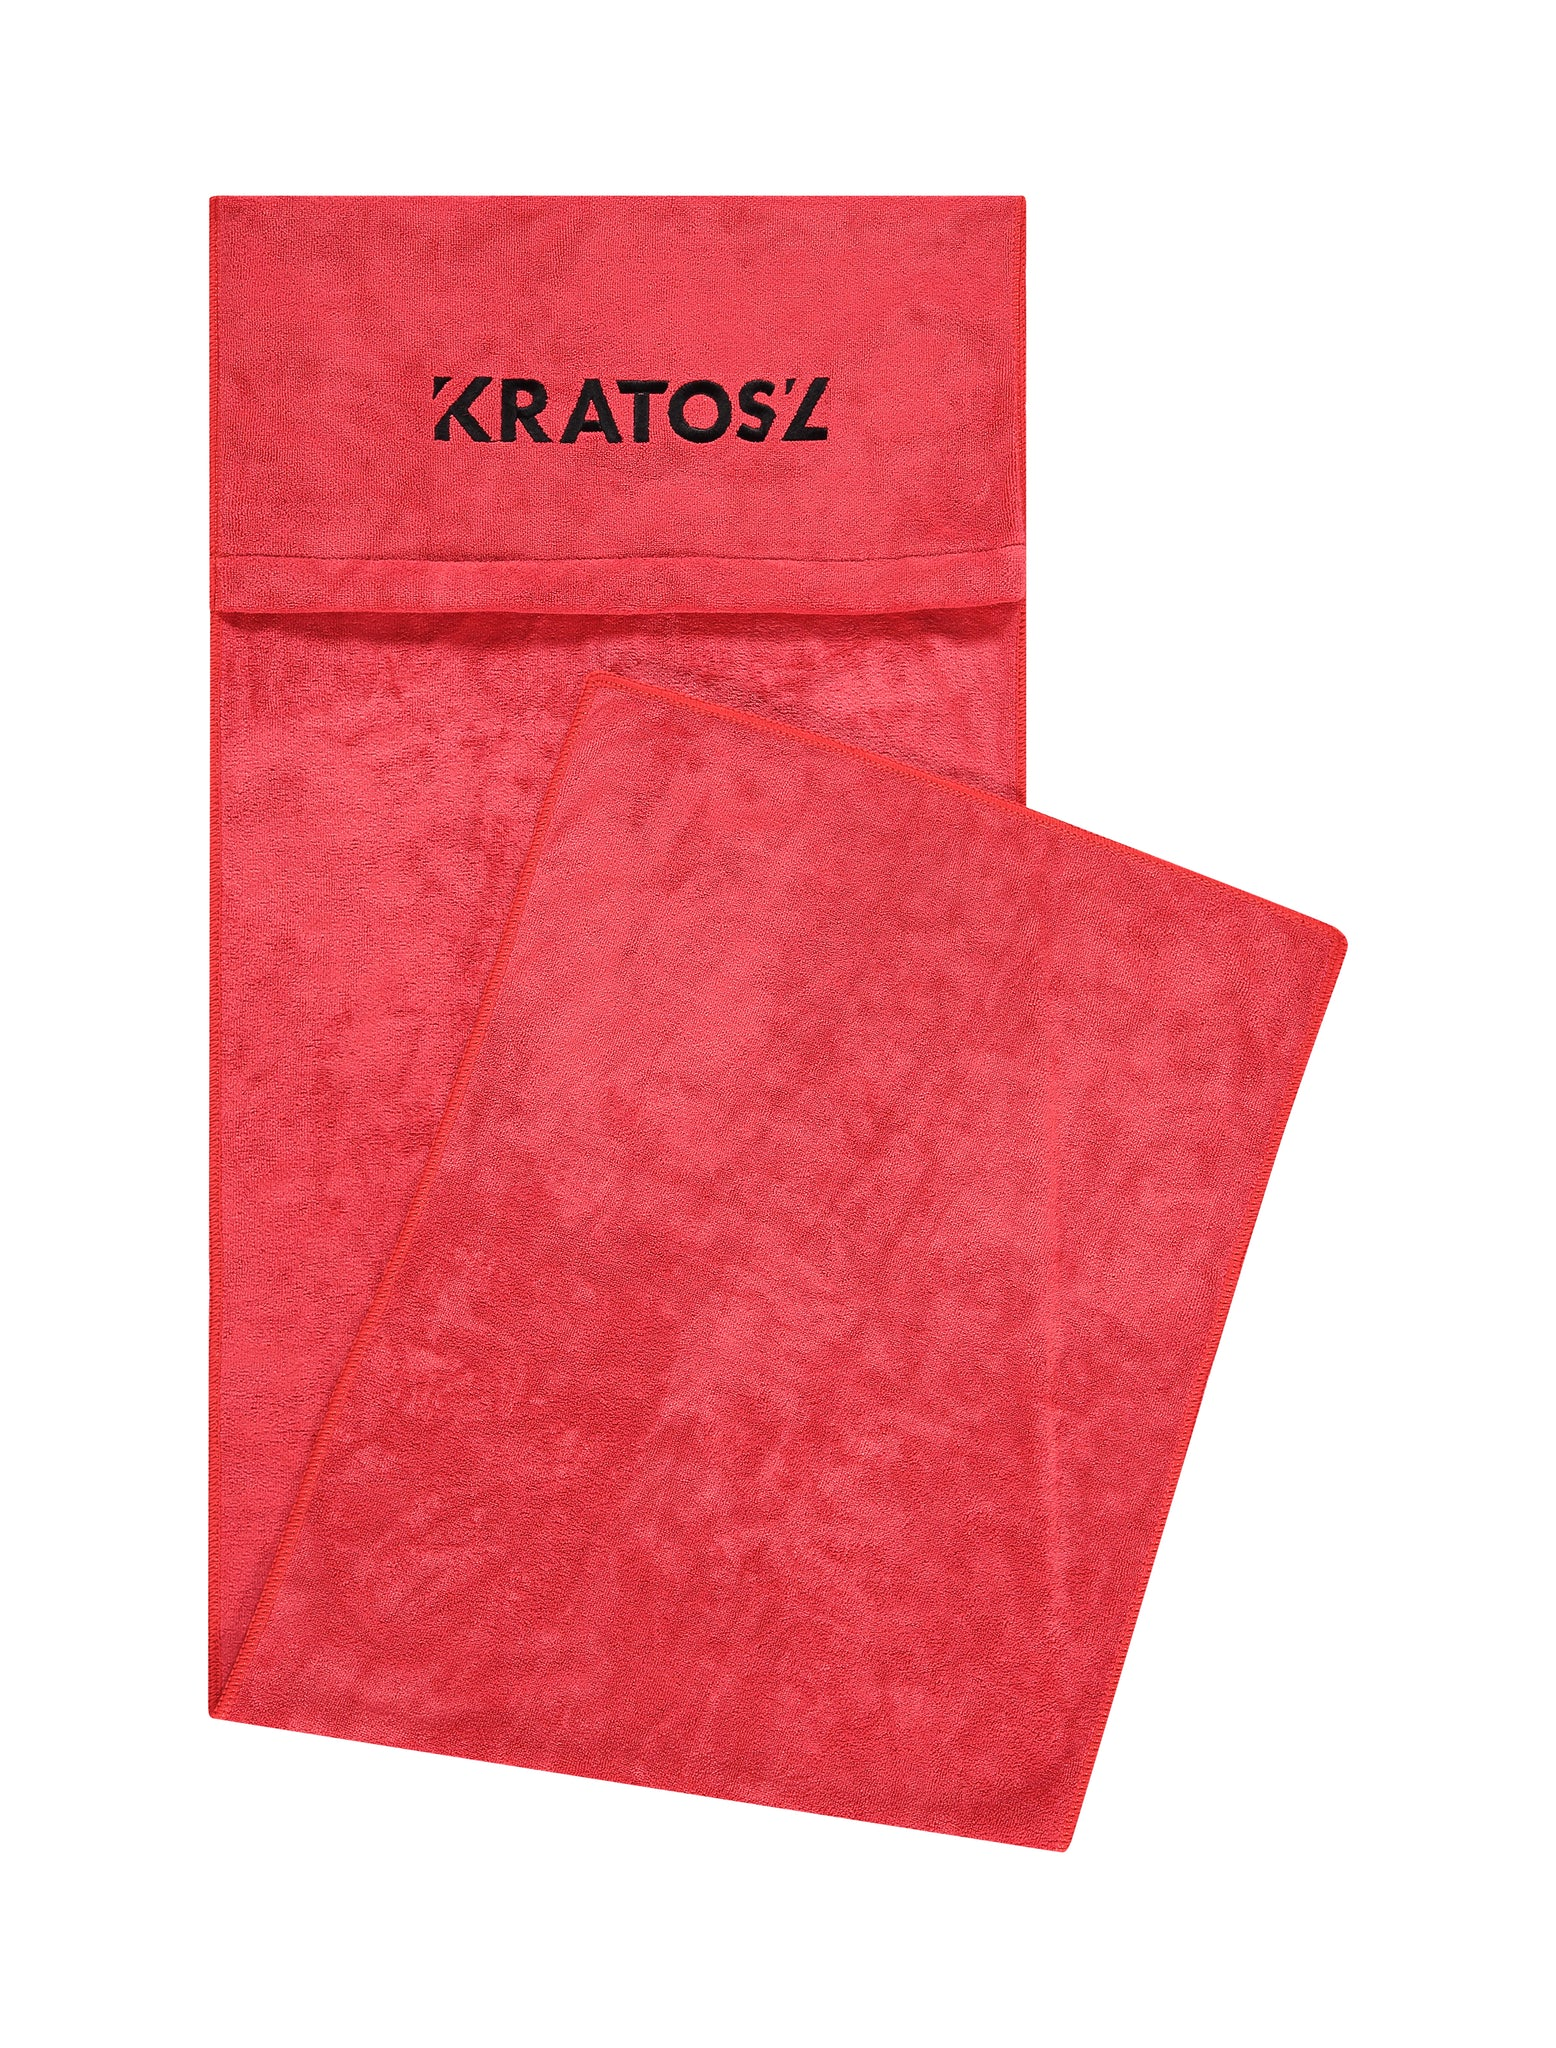 Oceanus Gym Towel-Kratosz